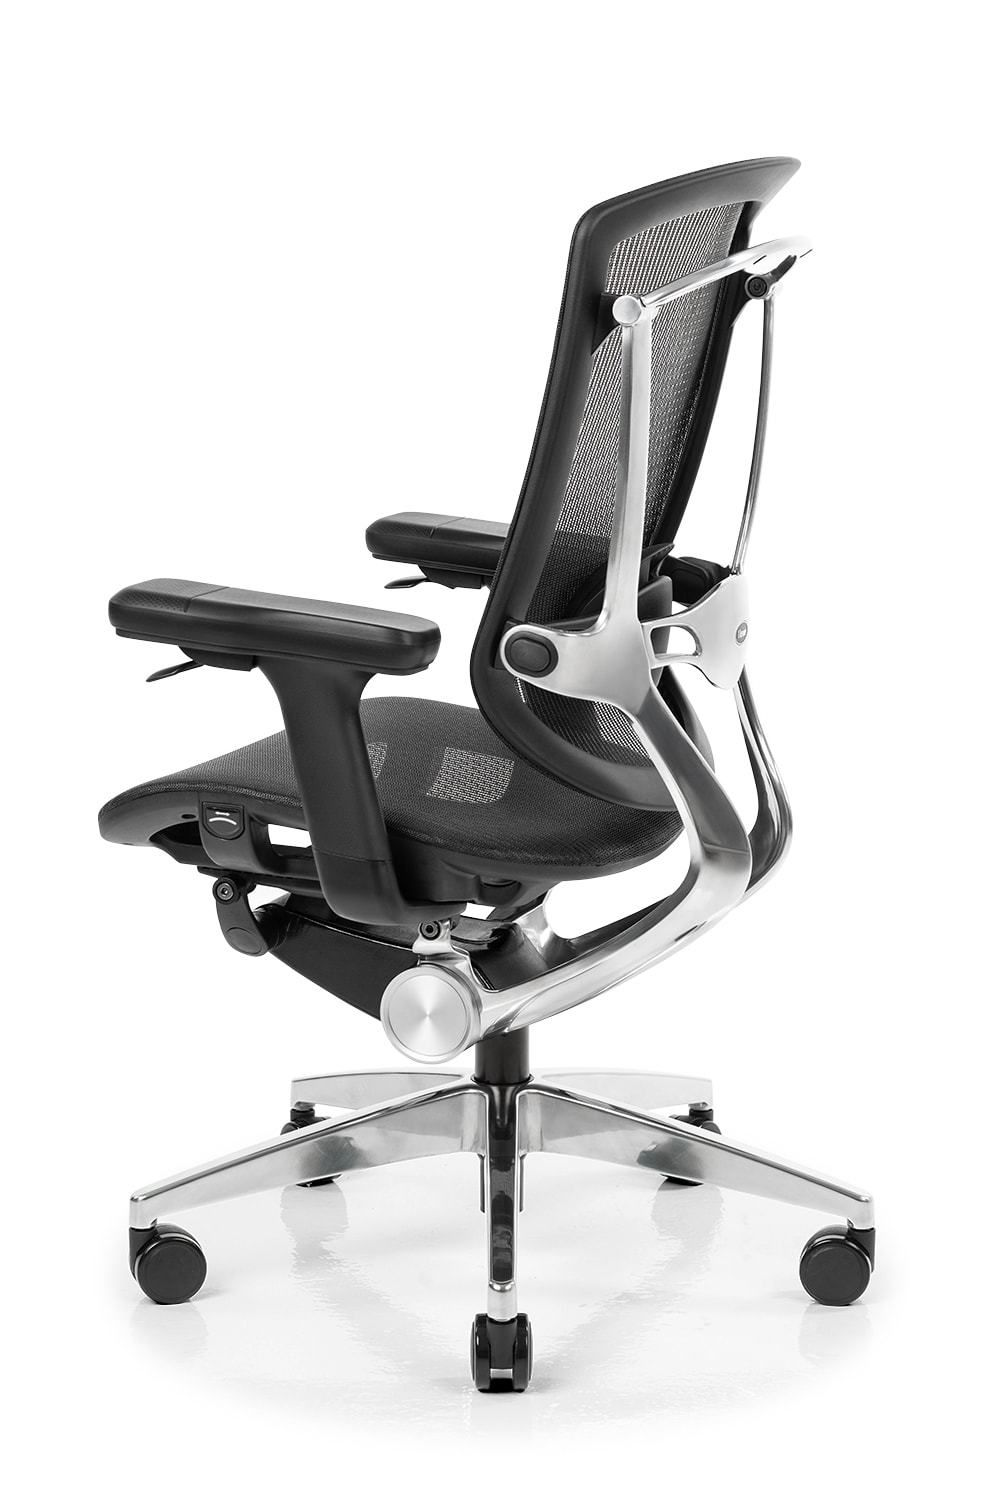 Secretlab S New Computer Office Chair Is The Neuechair Any Good Ergonomic Office Chair Office Chair Best Ergonomic Office Chair